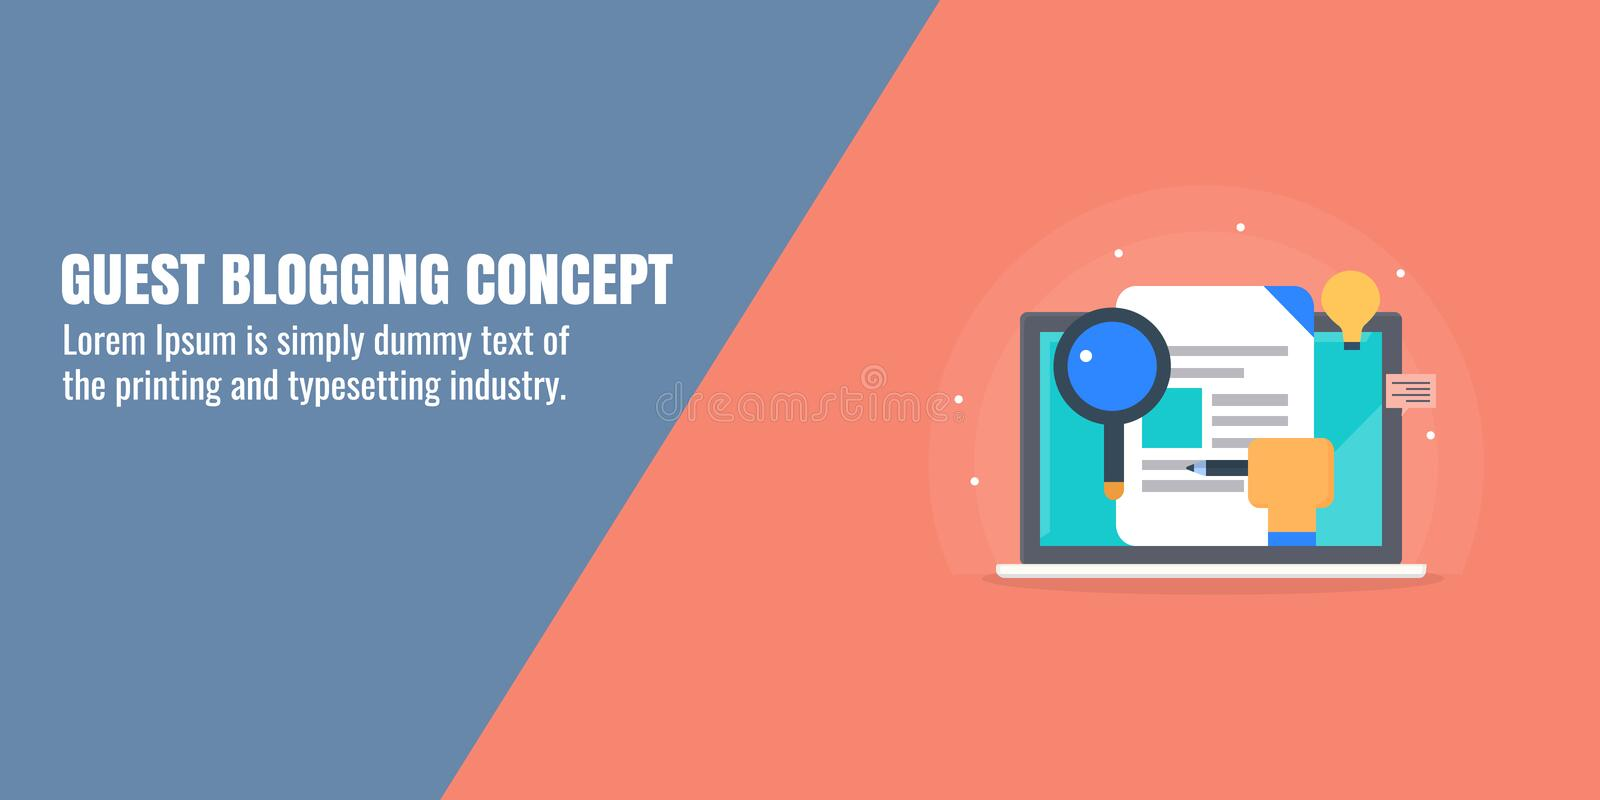 Guest blogging, content research, writing, publishing, influencer strategy, content marketing, social media promotion. Flat banner royalty free illustration